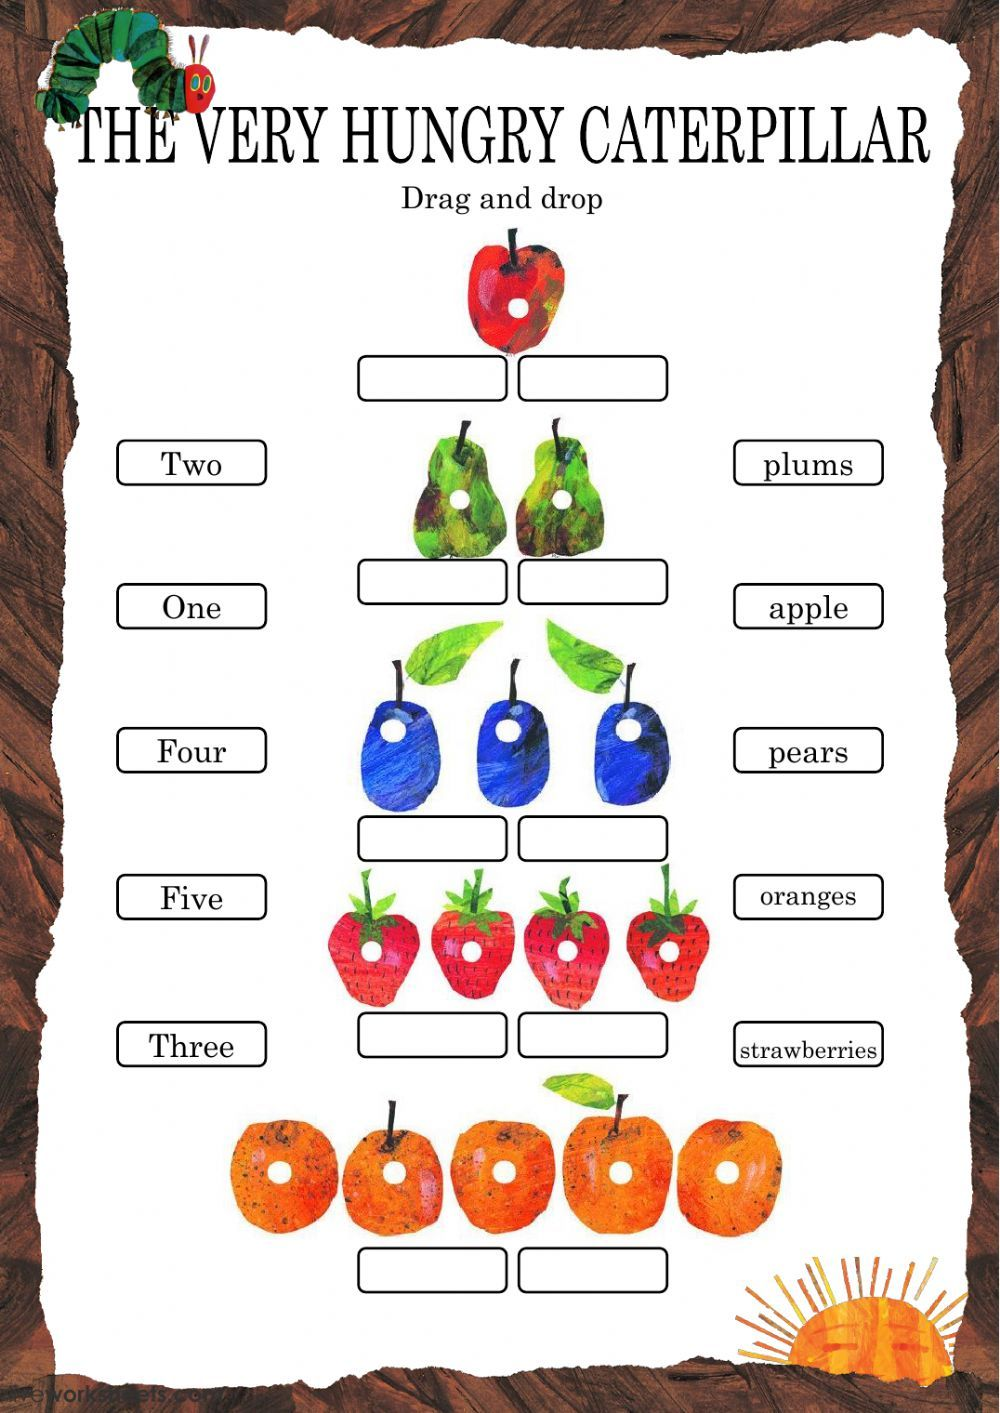 The Very Hungry Caterpillar Interactive And Downloadable Worksheet You Can Do The Exerc Hungry Caterpillar The Very Hungry Caterpillar Very Hungry Caterpillar